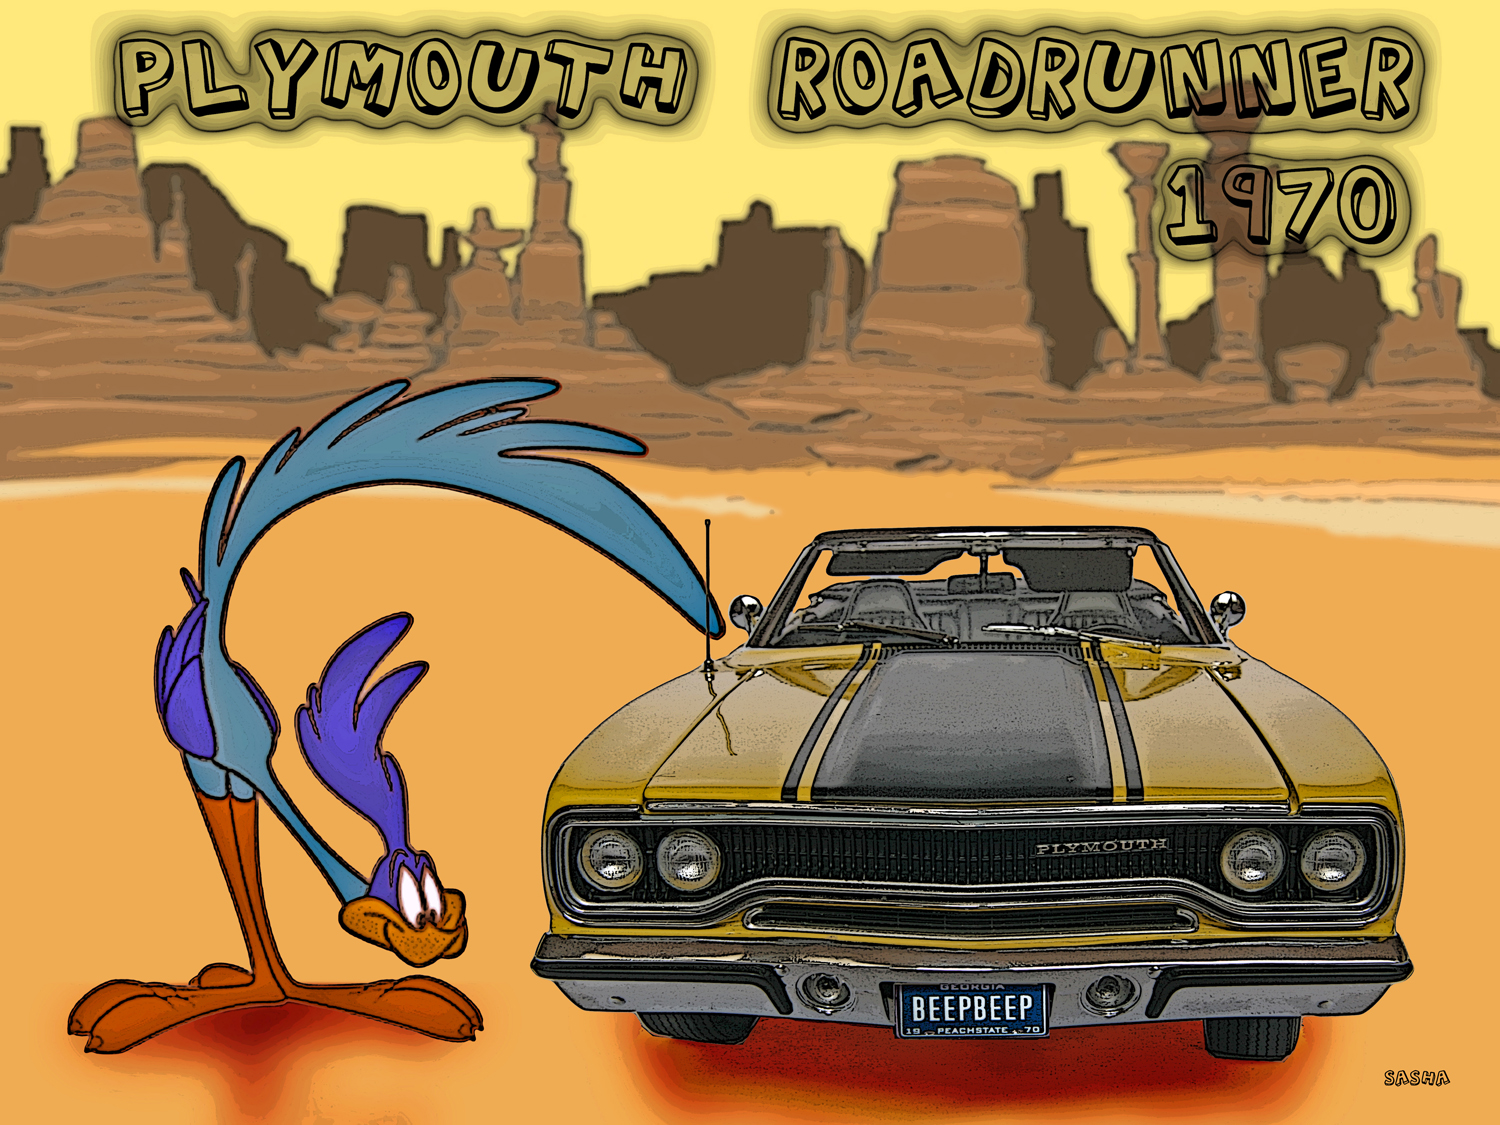 Plymouth RoadRunner 1970.jpg